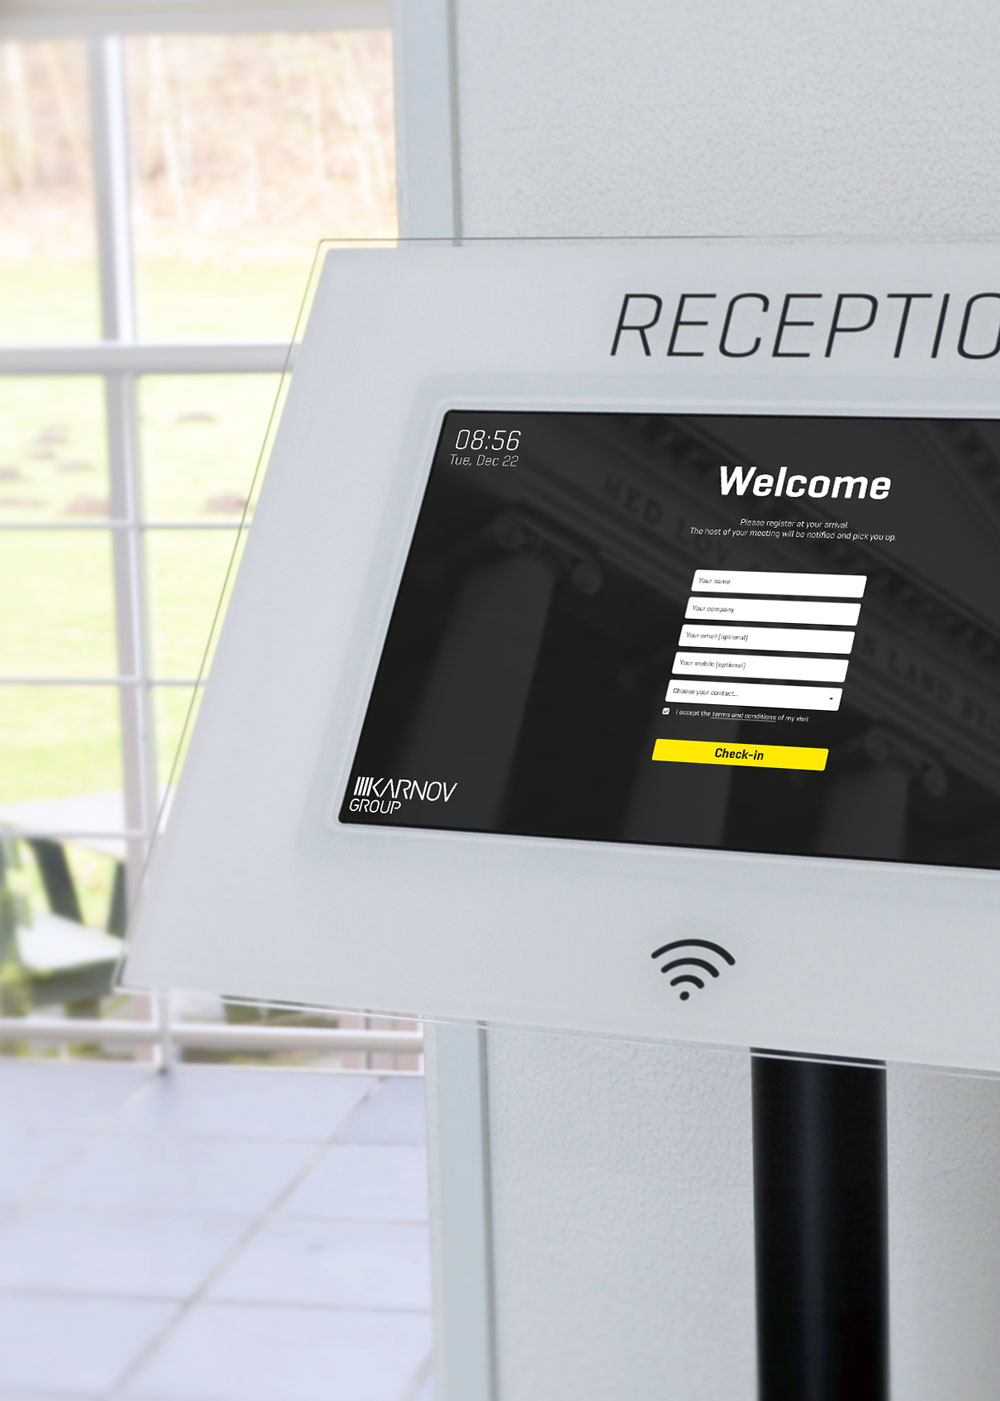 Welcome kiosk in the Reception